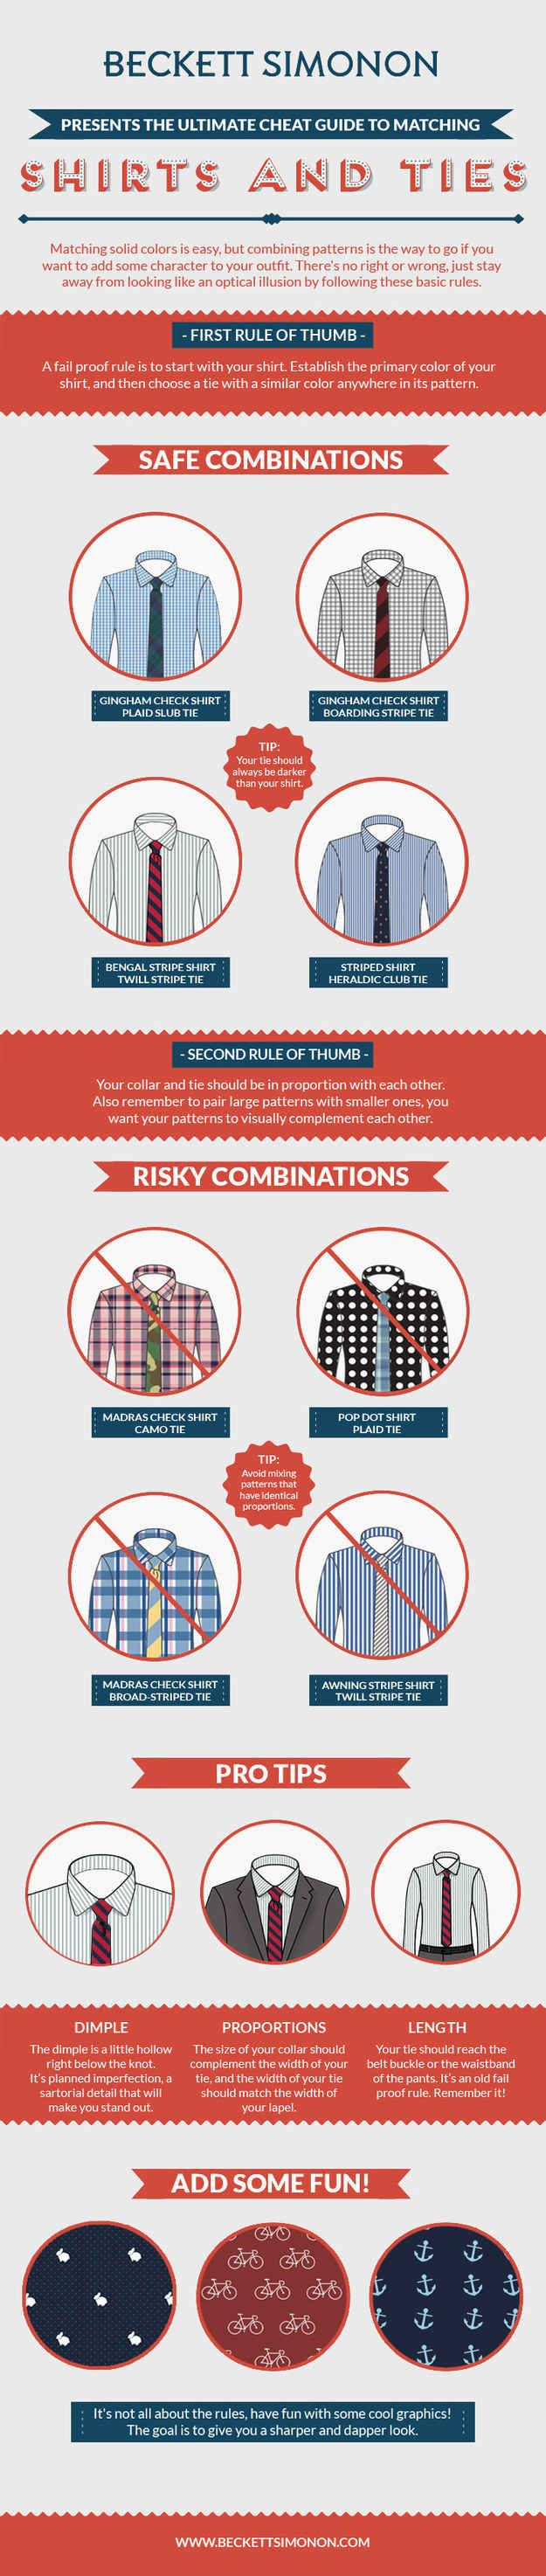 Before you throw on that shirt with that tie, STOP! And take a look at these helpful color and pattern combos.